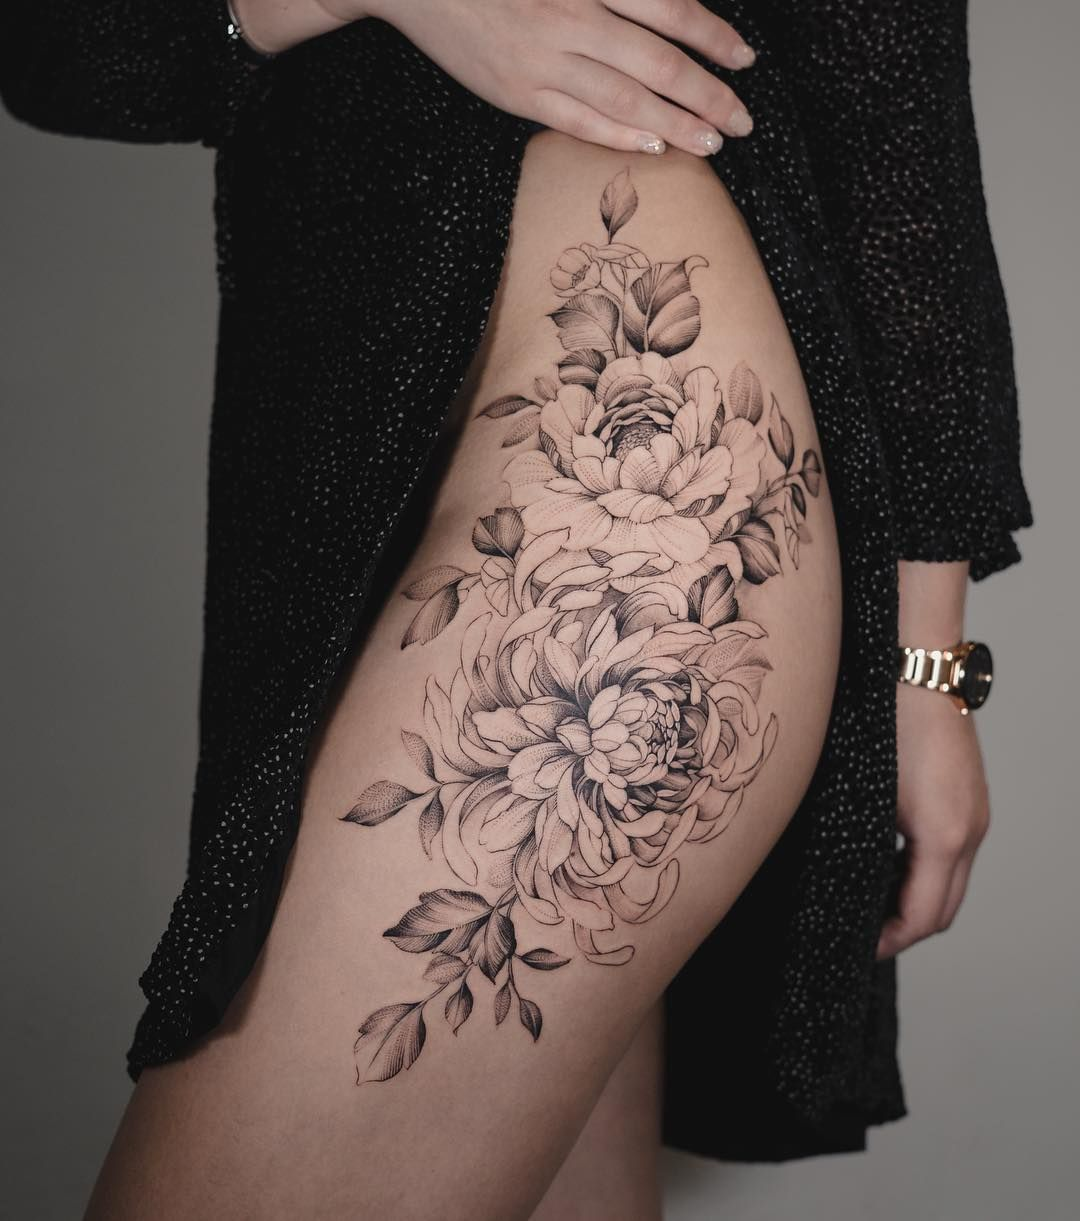 Tritoan Ly On Instagram Chrysanthemum And Peony Done In Toronto Done Freehand As Per Usual Floral Thigh Tattoos Flower Hip Tattoos Hip Tattoos Women